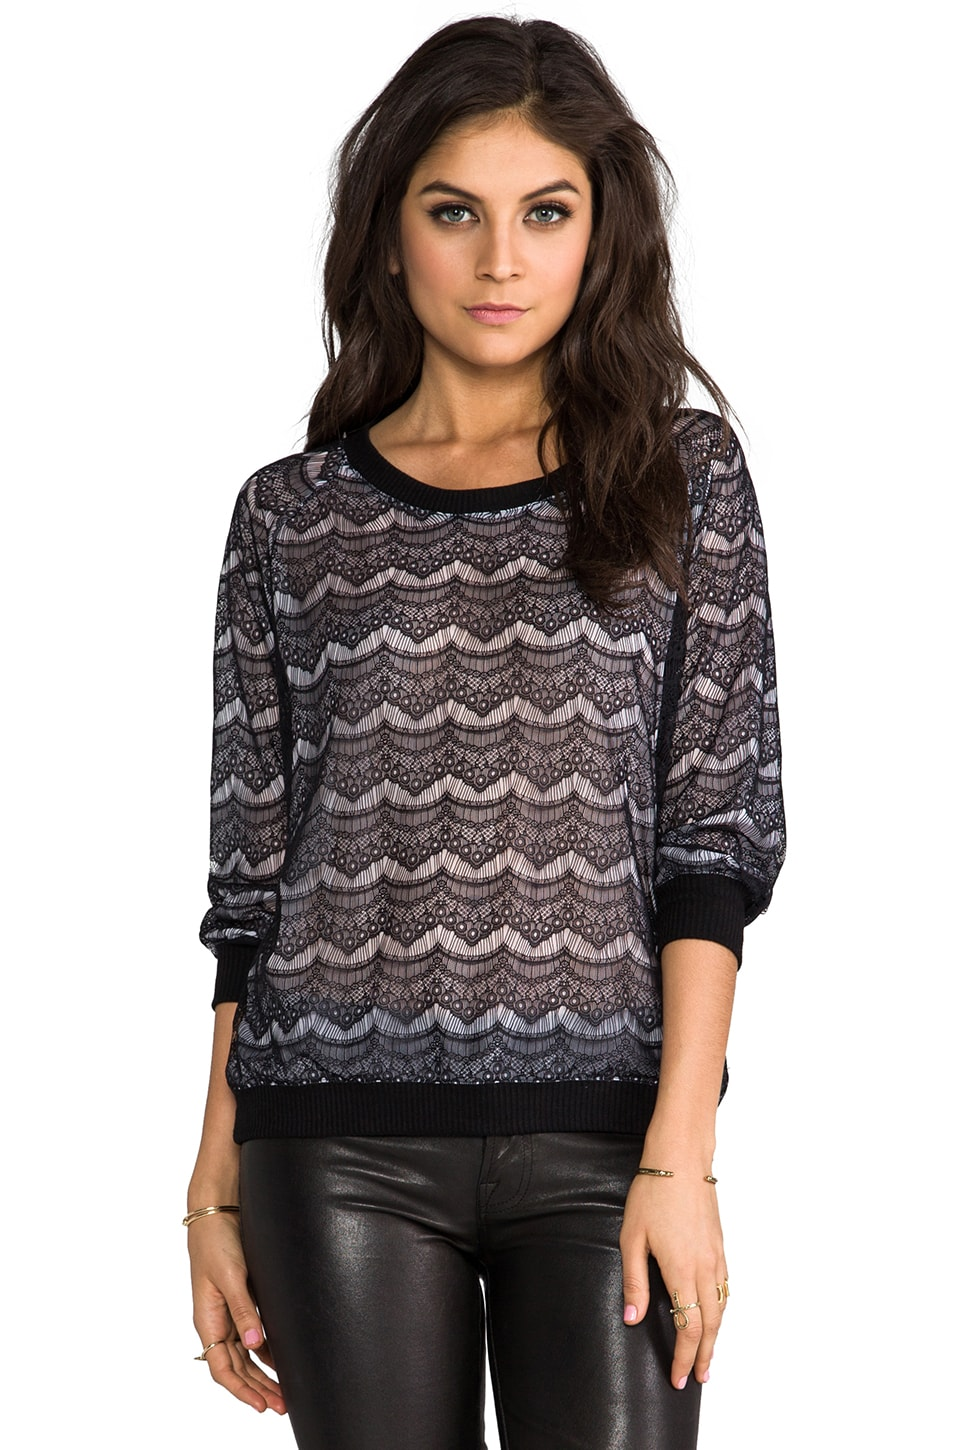 SJOBECK Lace Silk Sweatshirt in White/Black